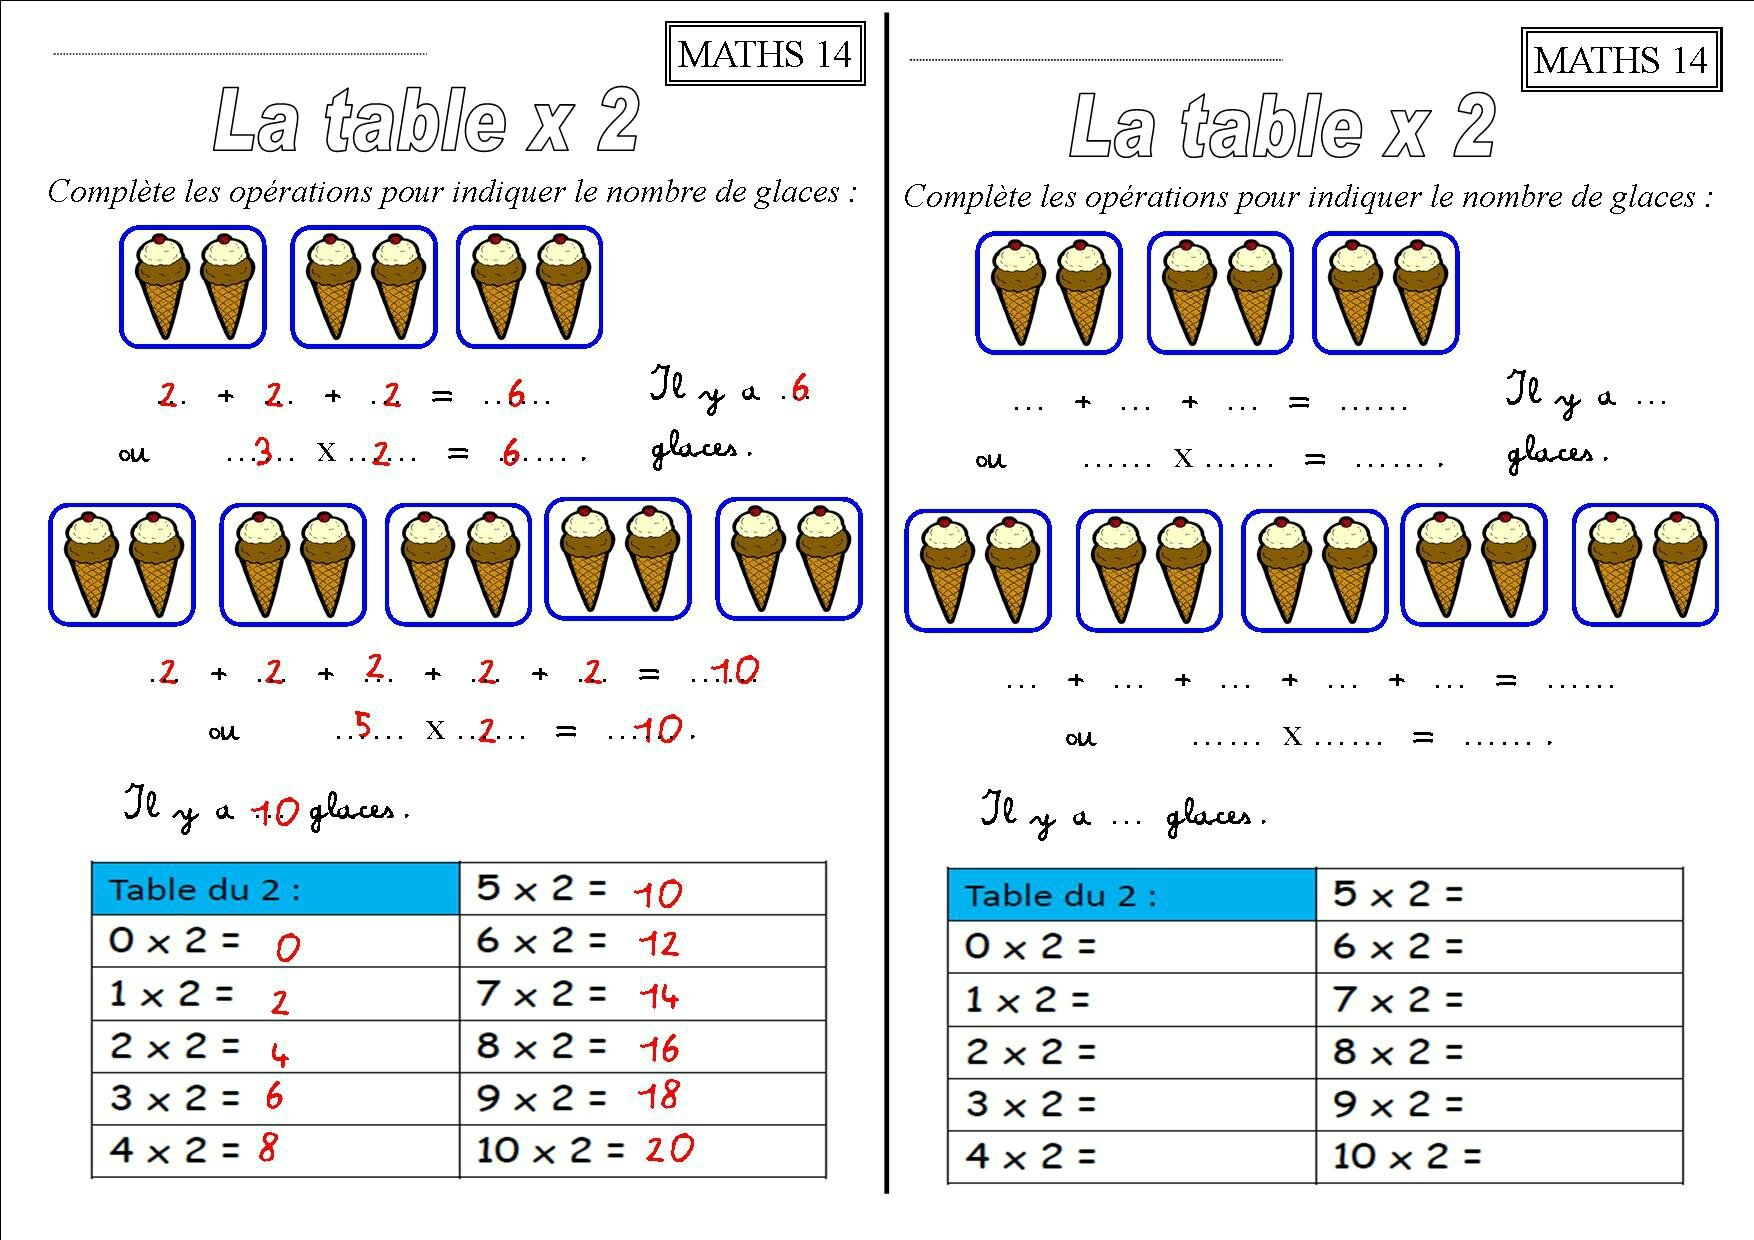 Les tables de multiplication CE1 : x 2, x 3, x 4, x 5, x 10 - La ...